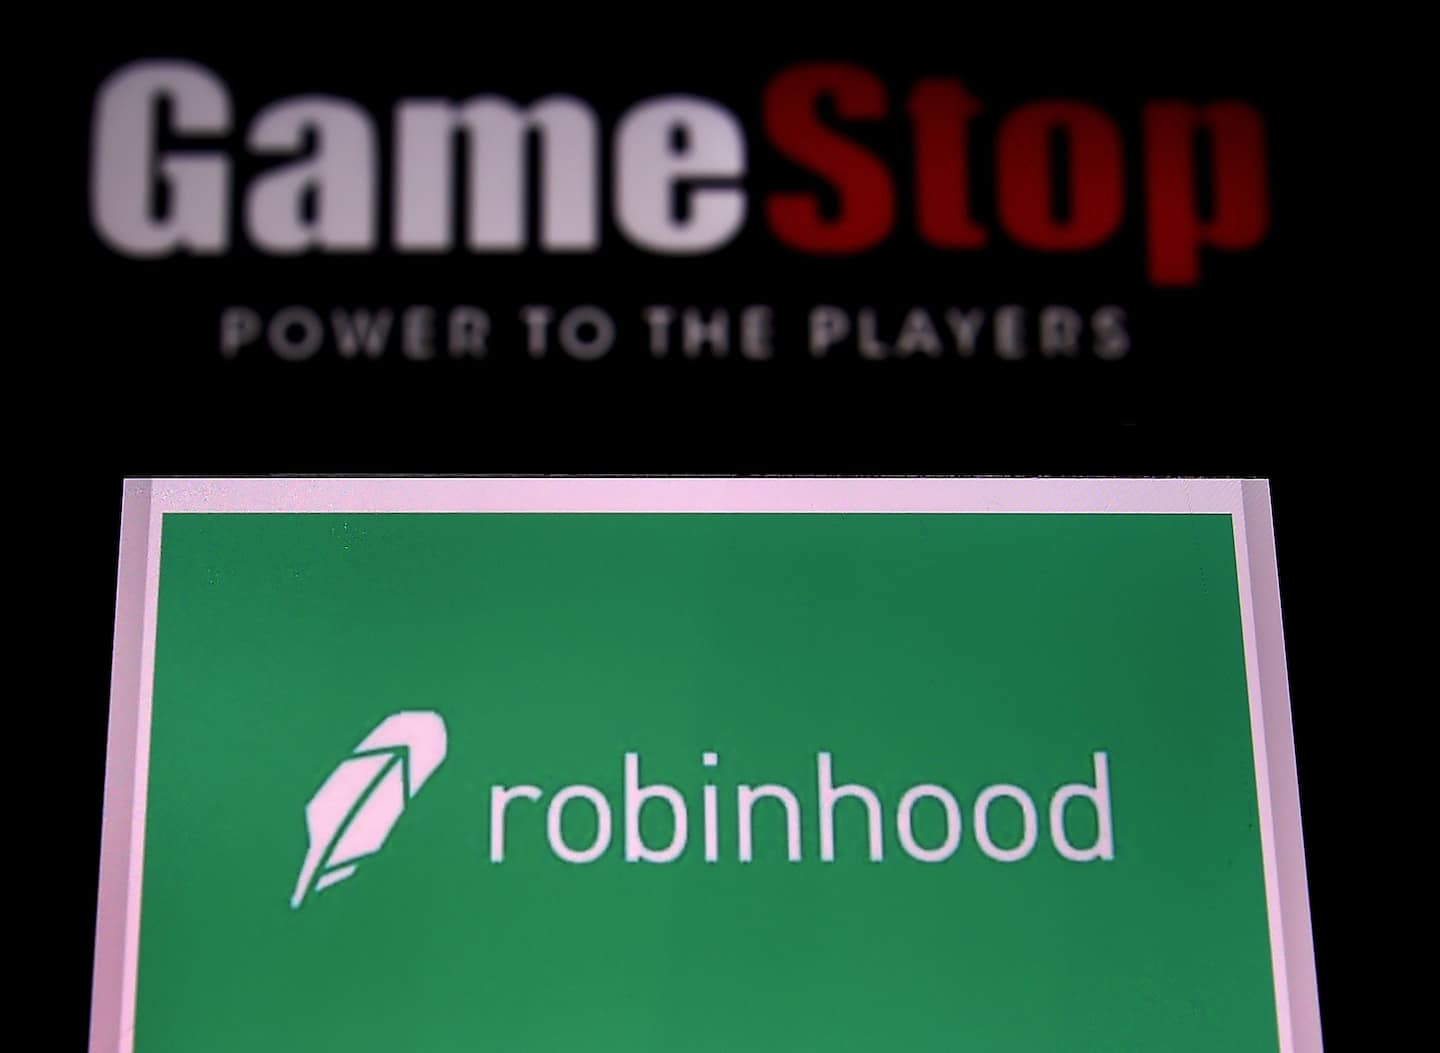 Access here alternative investment news about Gamestop, Amc Origins Were In A Letter From A Wall Street Investor Before A Reddit Wallstreetbets Message Board Took Up The Cause - The Washington Post